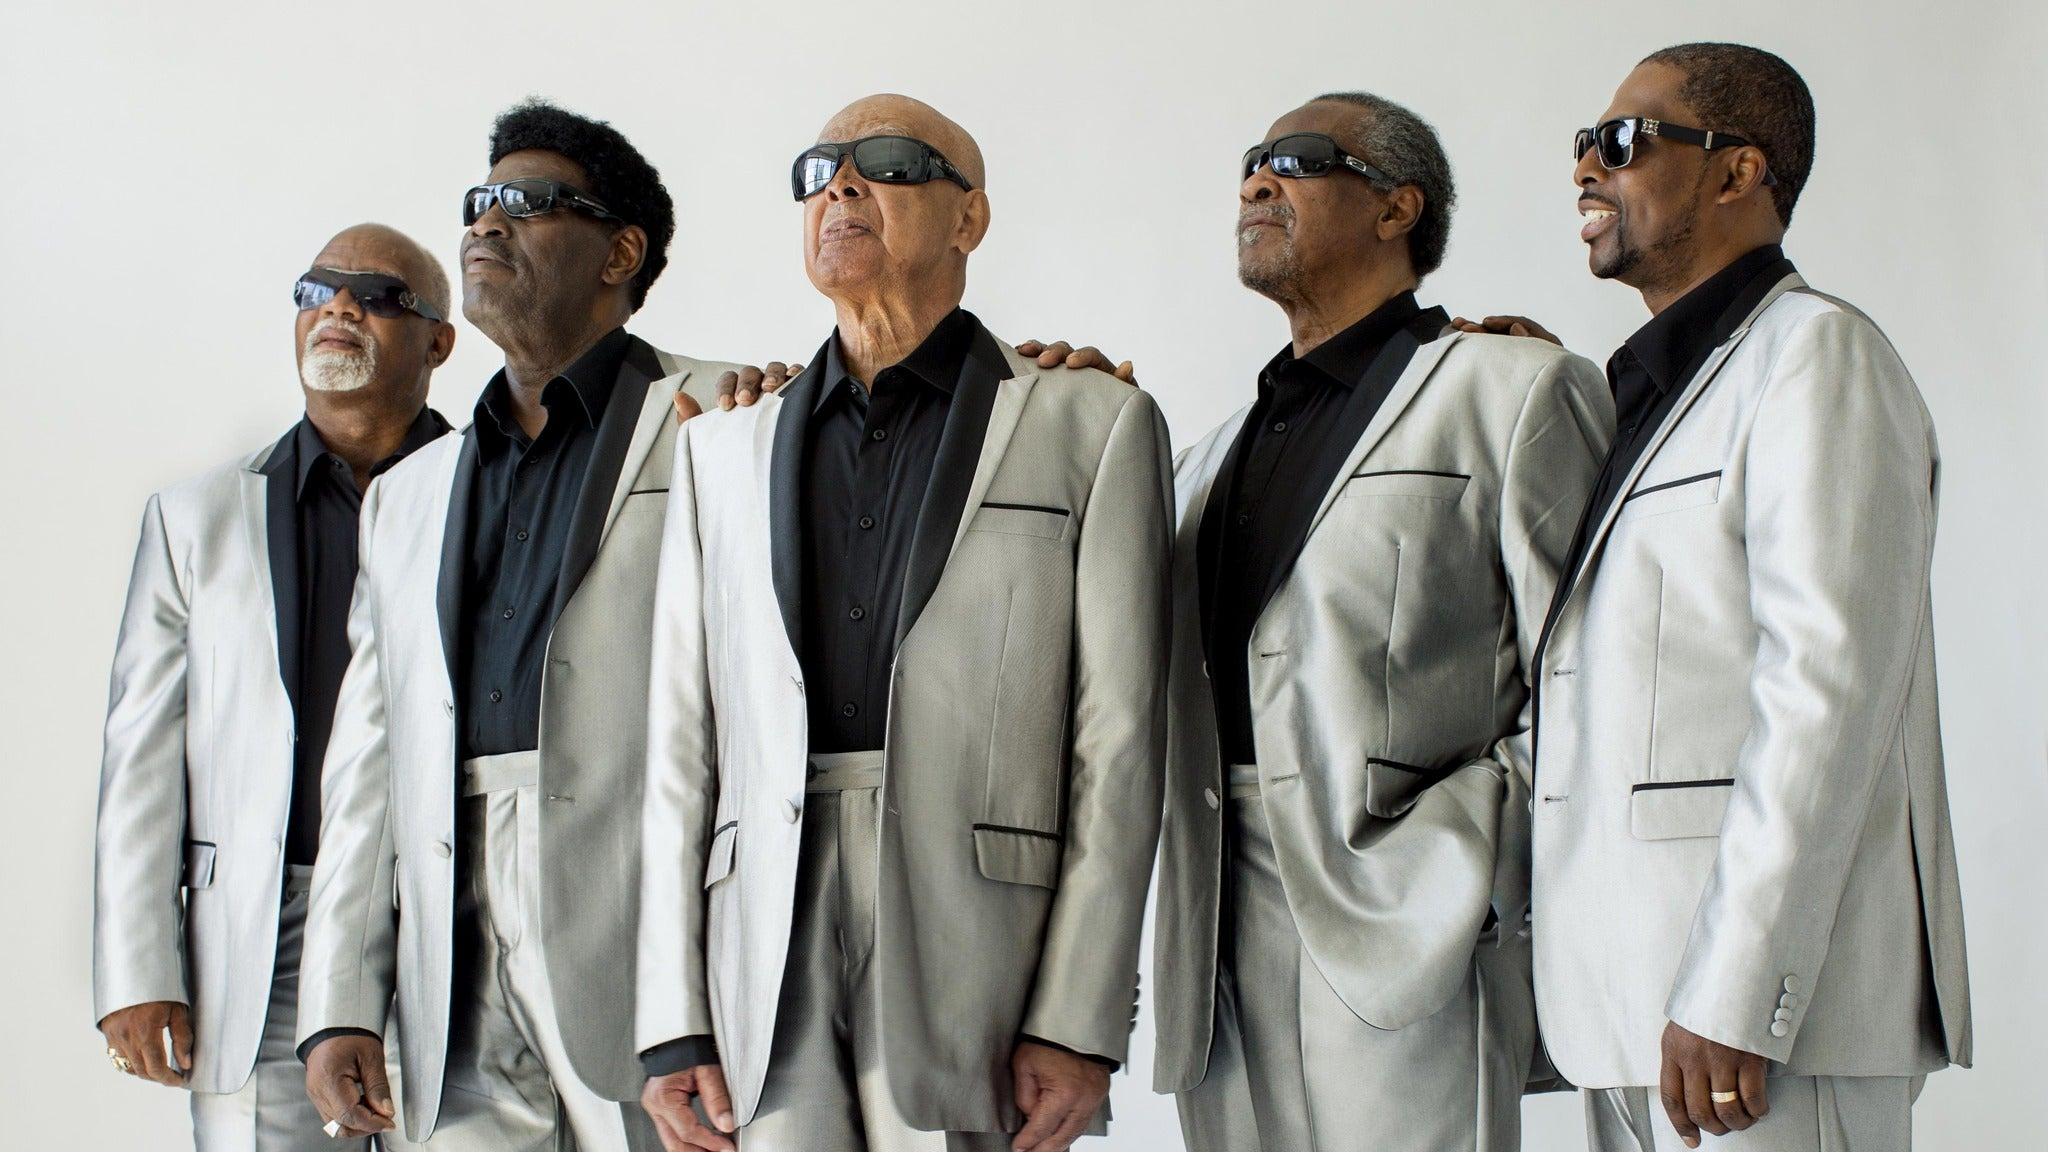 The Blind Boys of Alabama at The Coach House - San Juan Capistrano, CA 92675